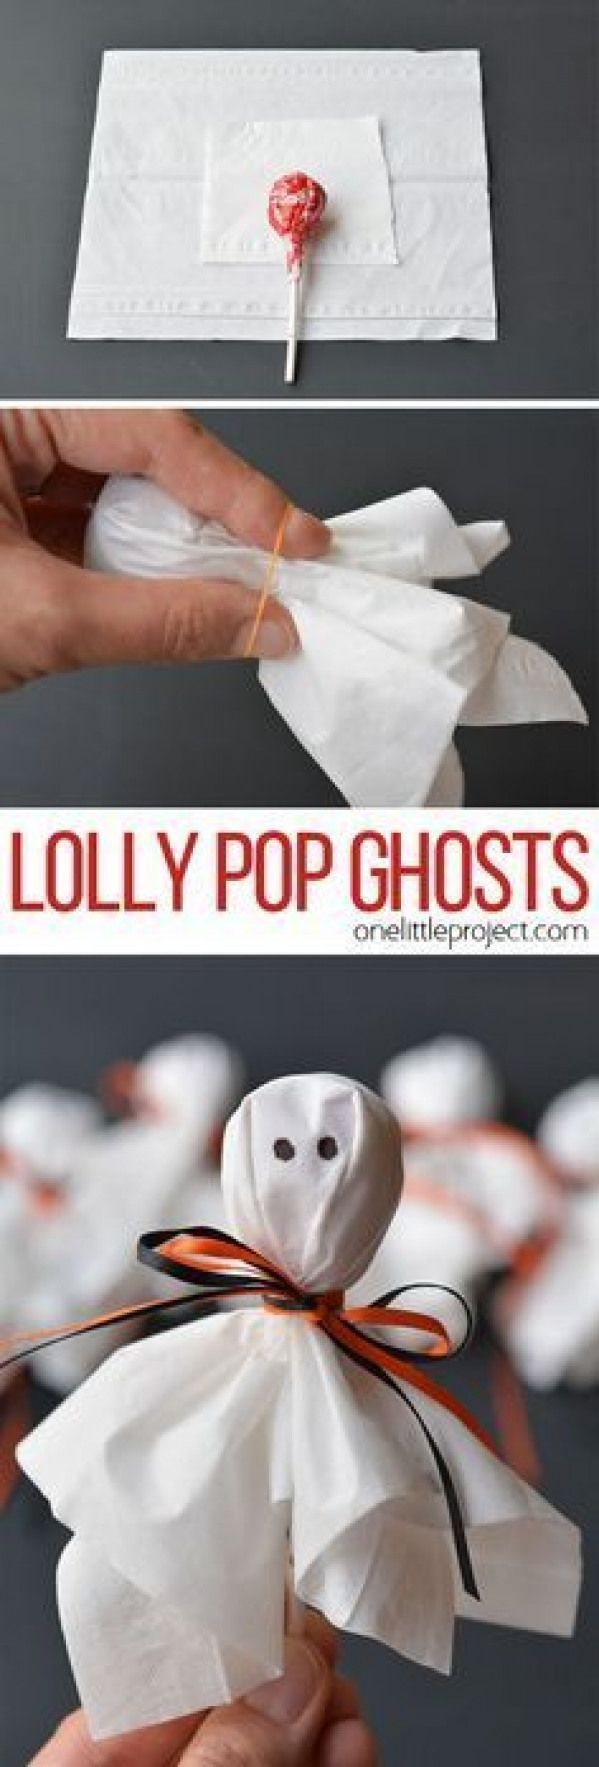 These lolly pop ghosts are SO CUTE! They're super easy and make a fun treat for ... - Halloween Decor -